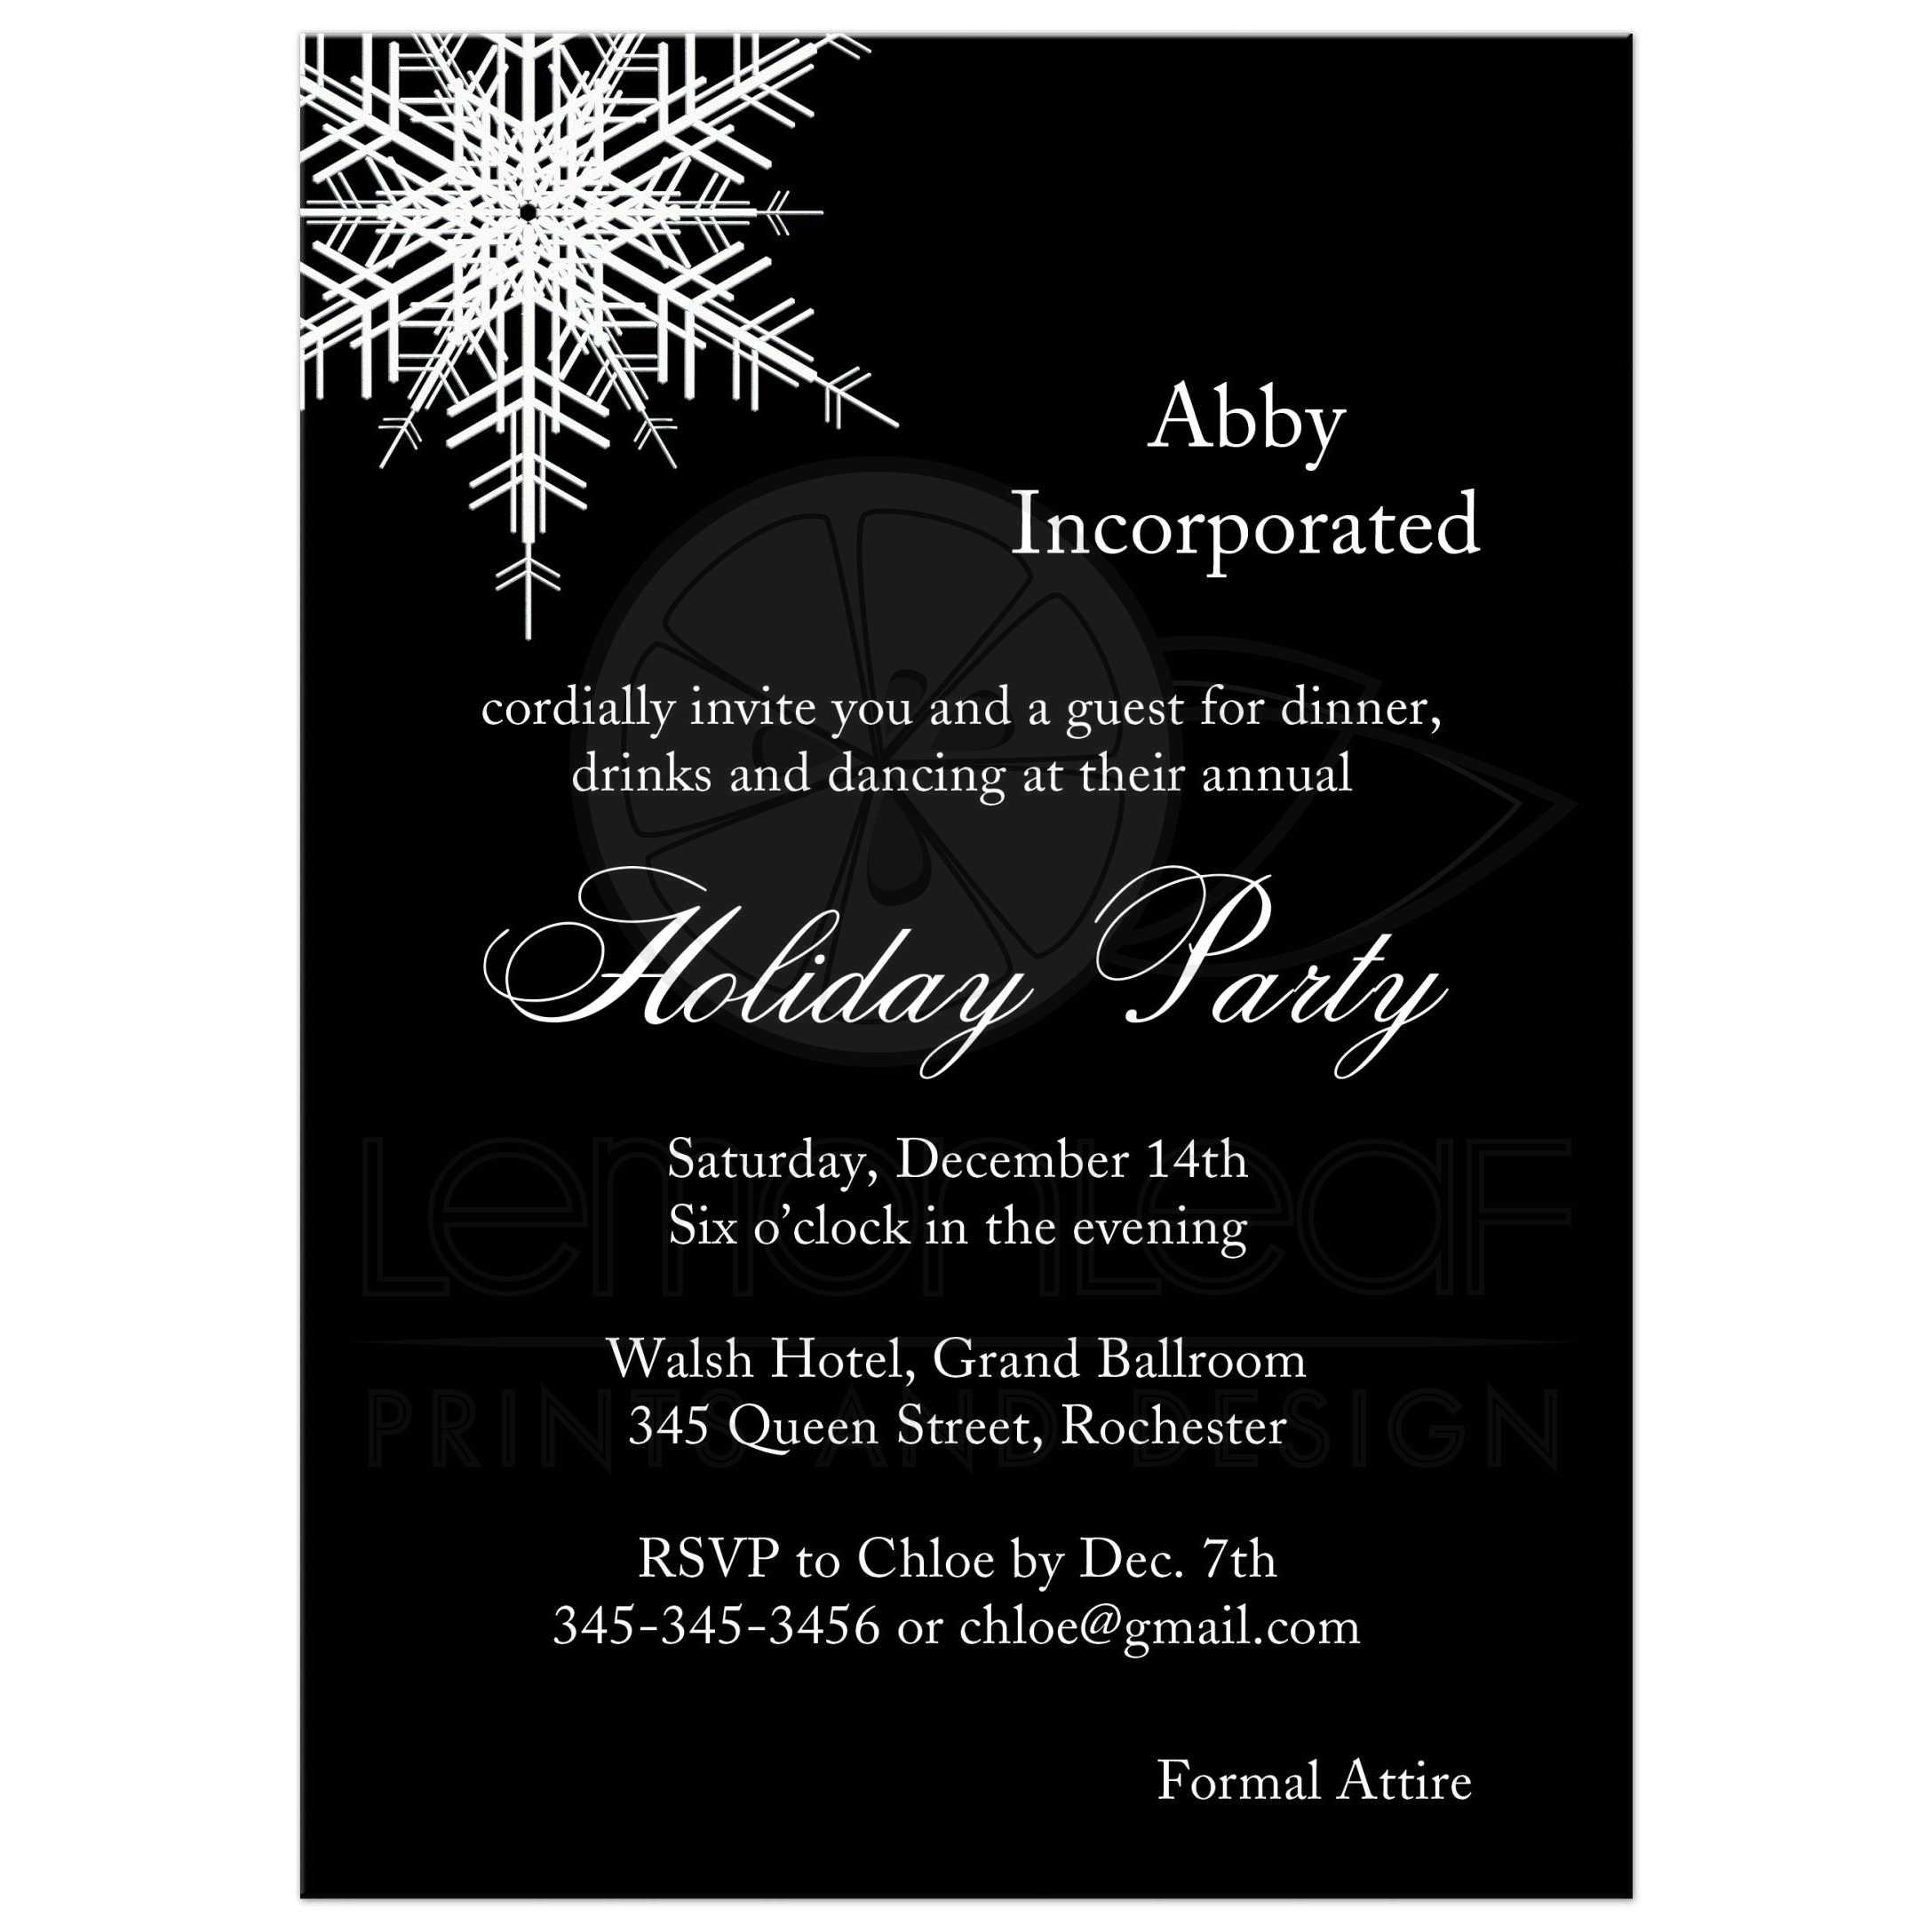 Lemonleafprintscomimageswatermarkeddetailed - Corporate party invitation template